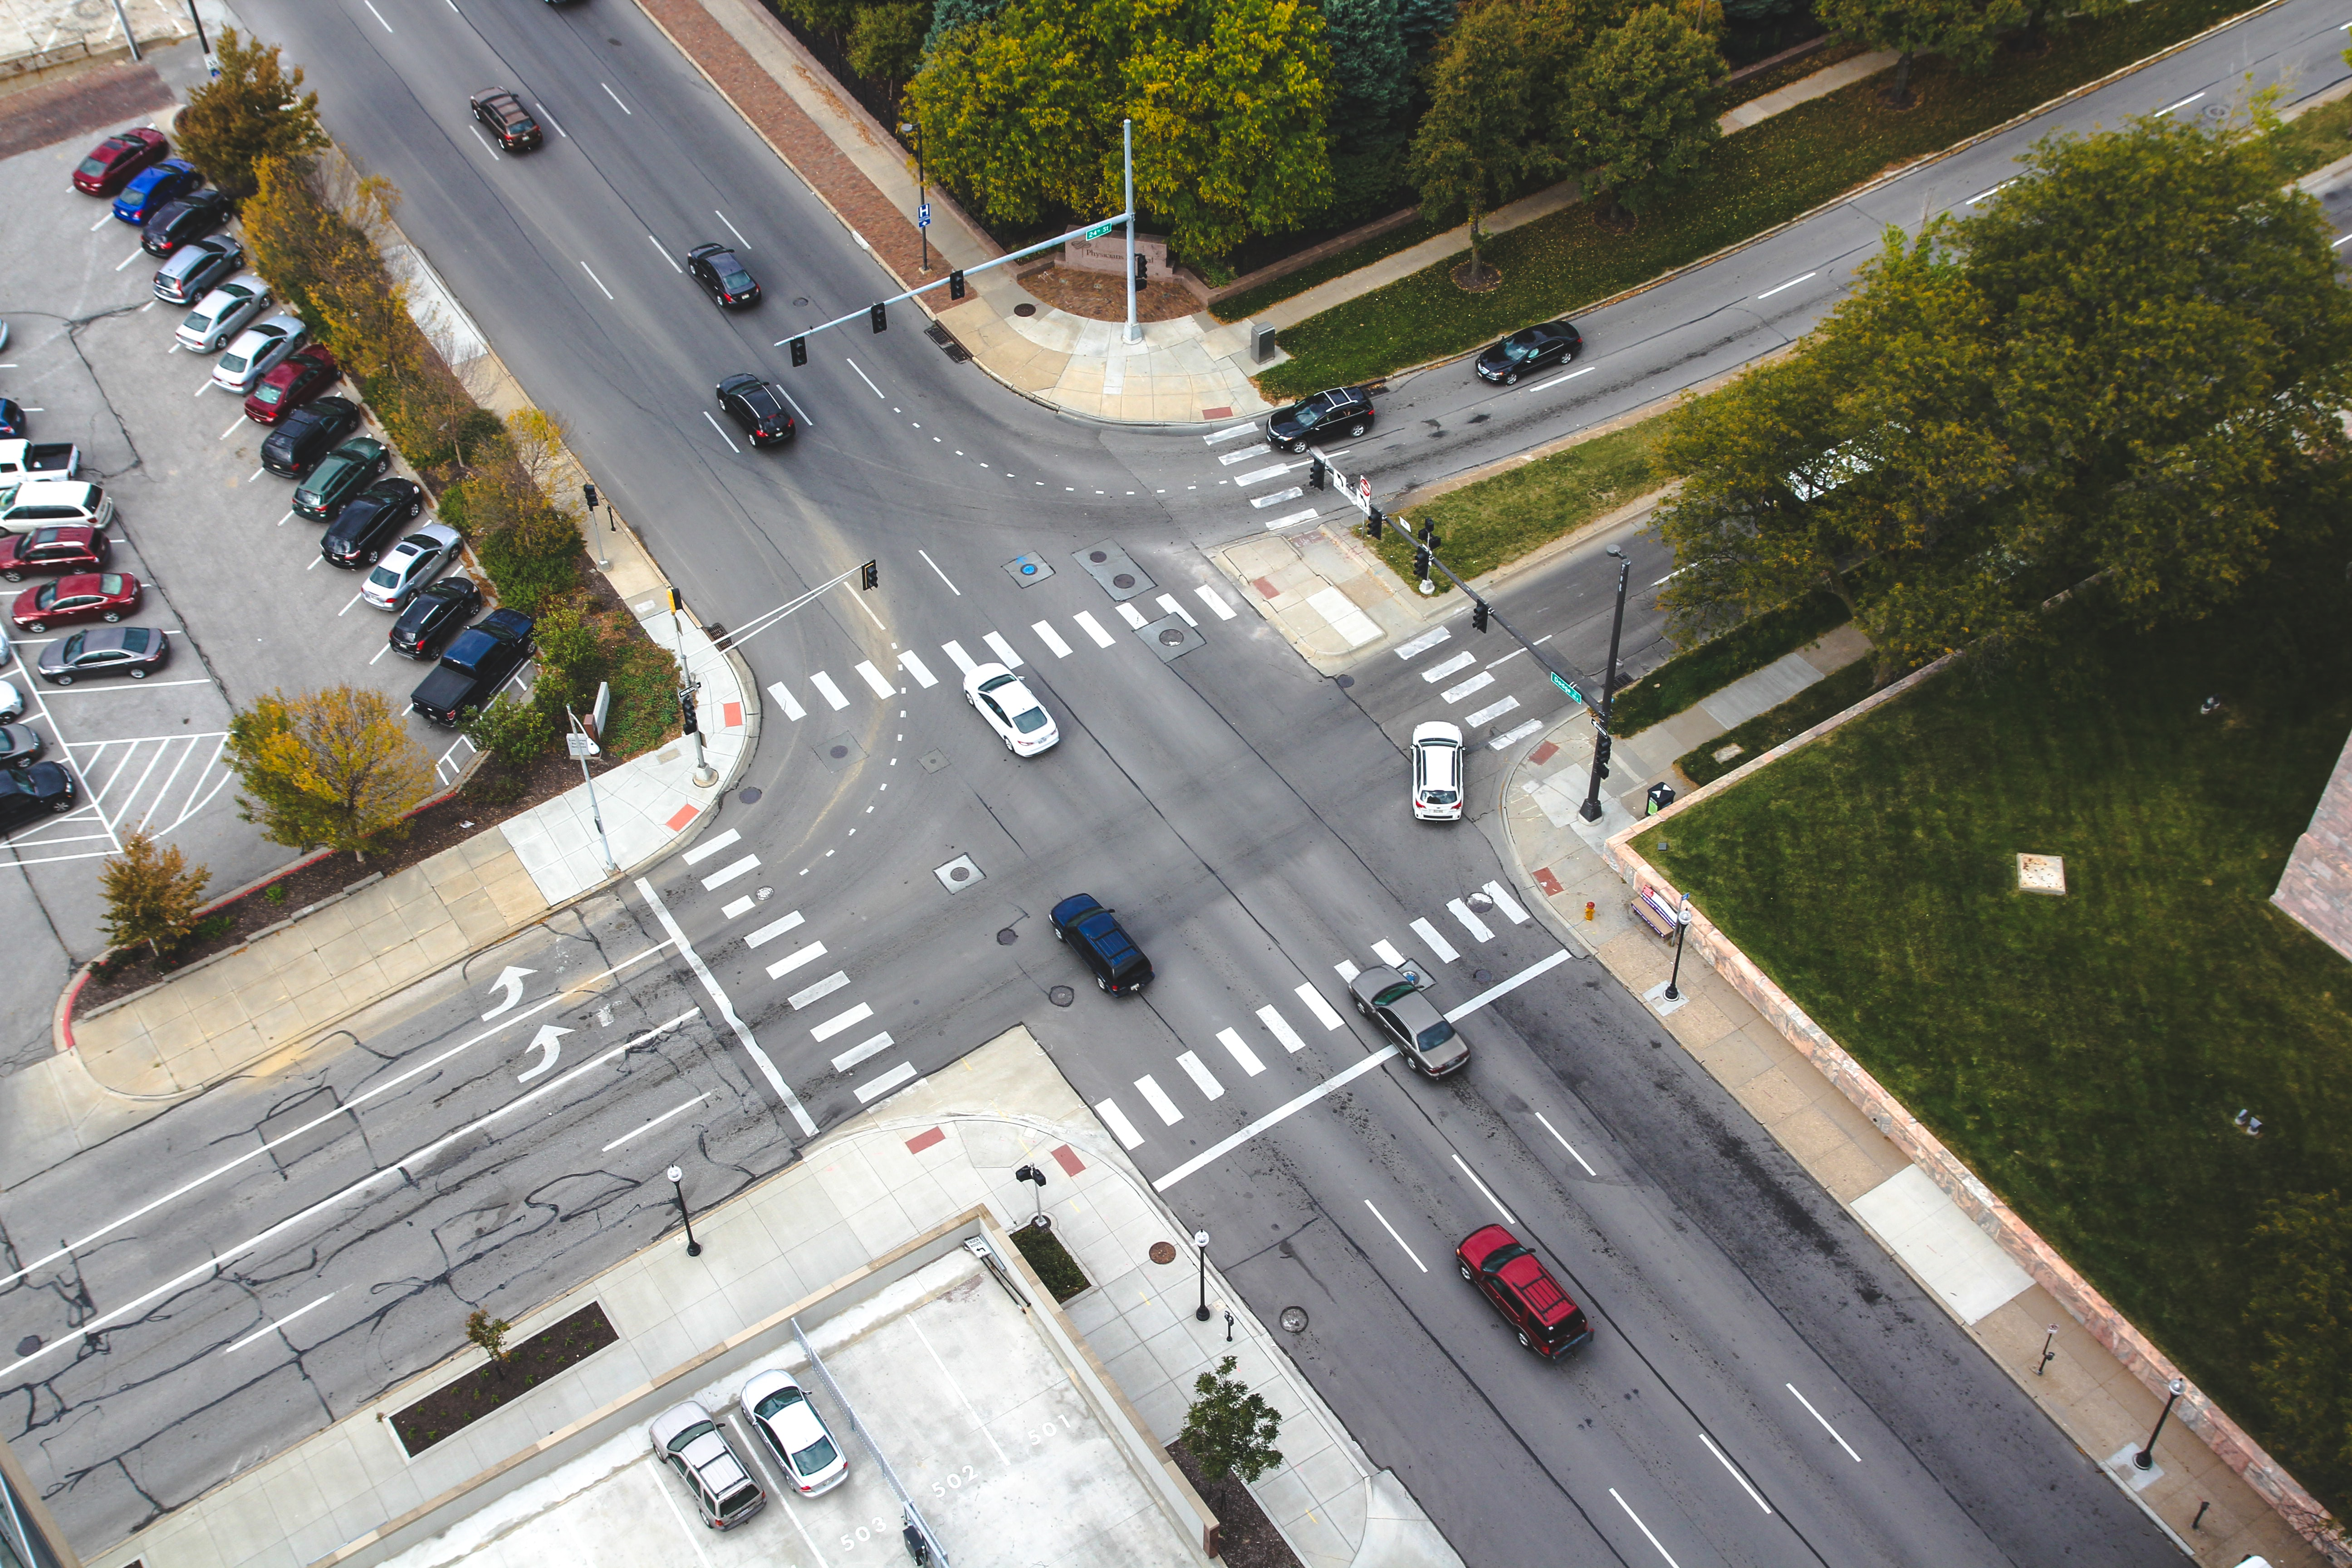 aerial photography of cars on road intersection